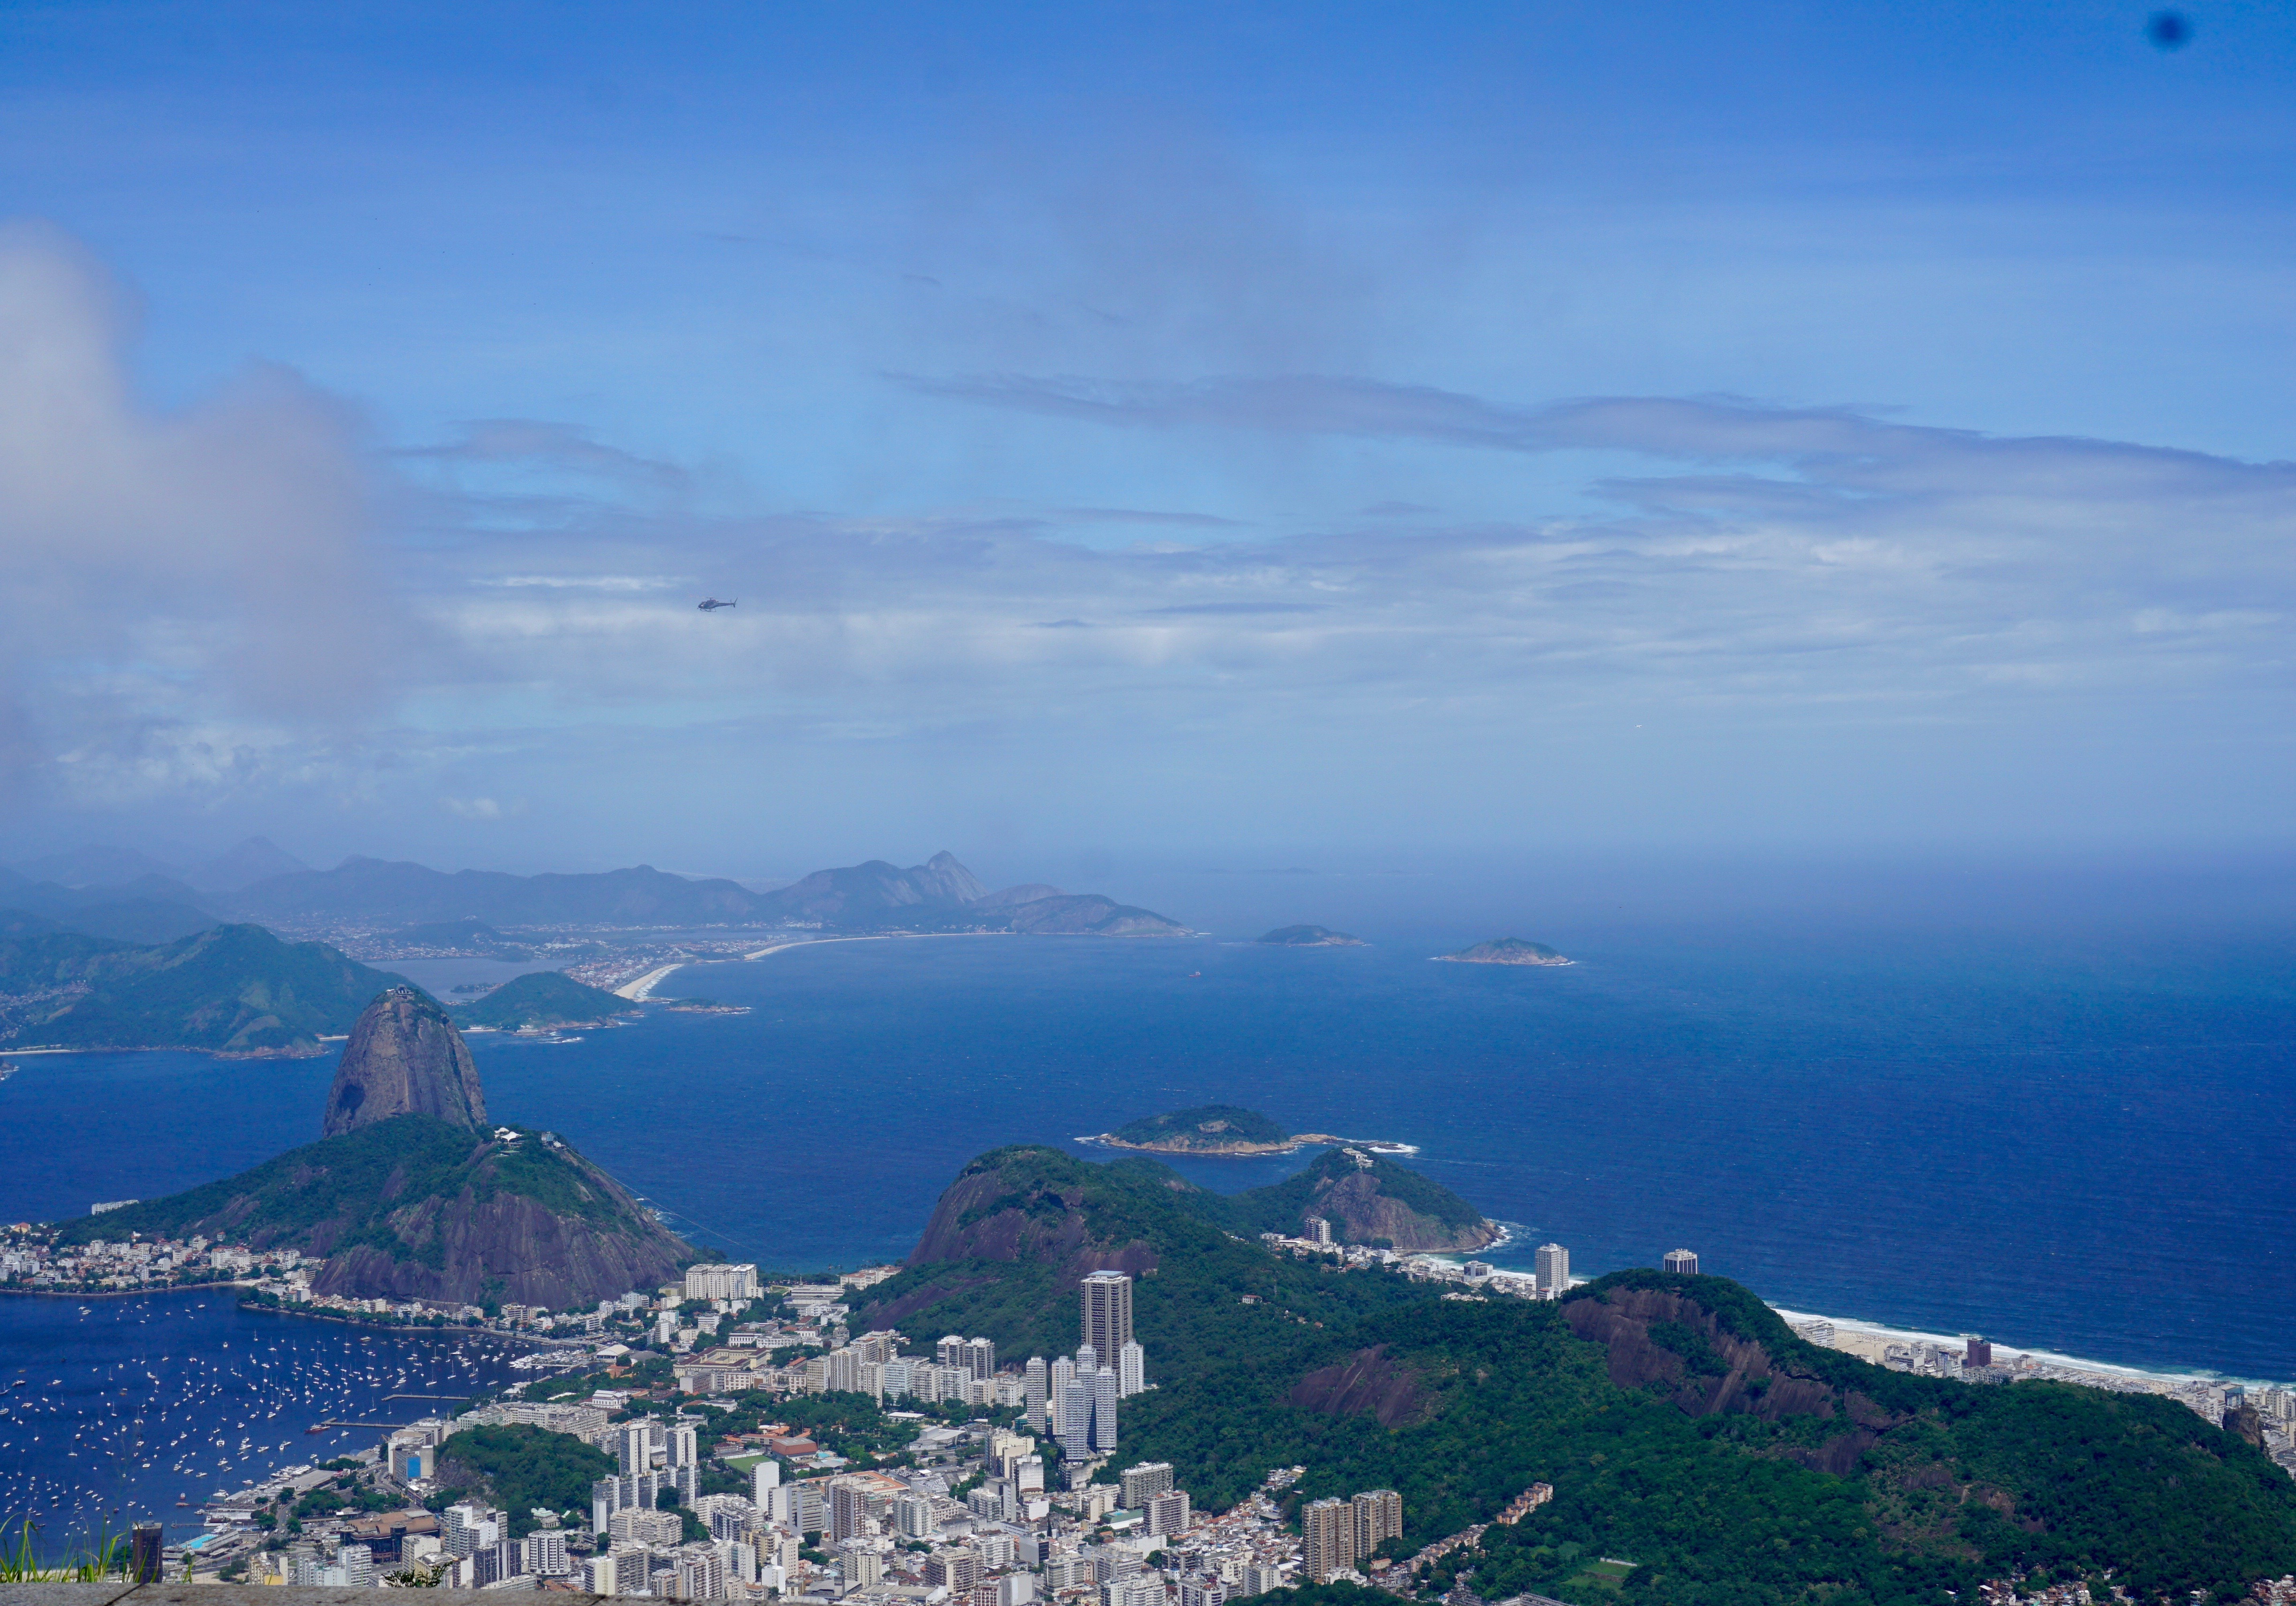 view of Sugarloaf Mountain from Corcovado